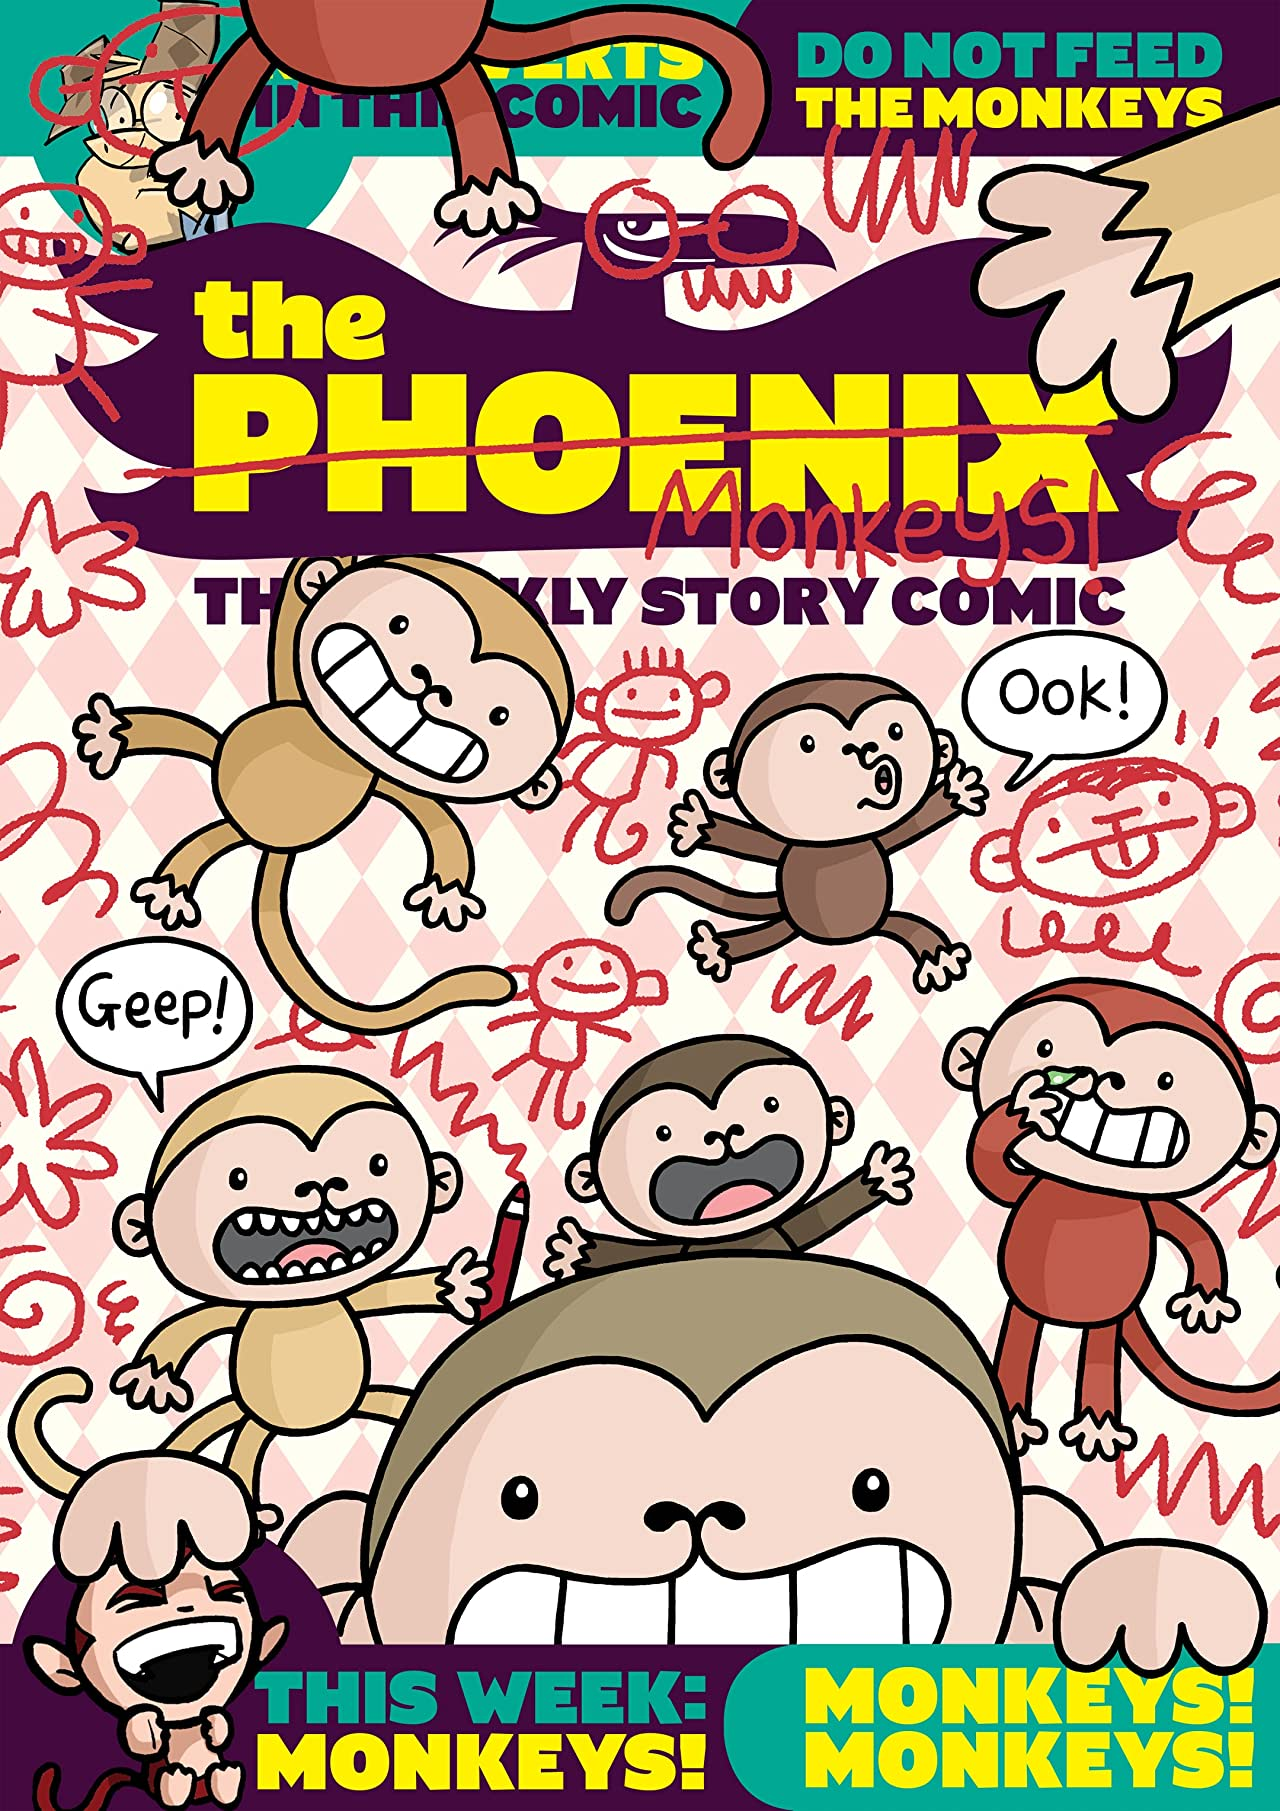 The Phoenix #163: The Weekly Story Comic